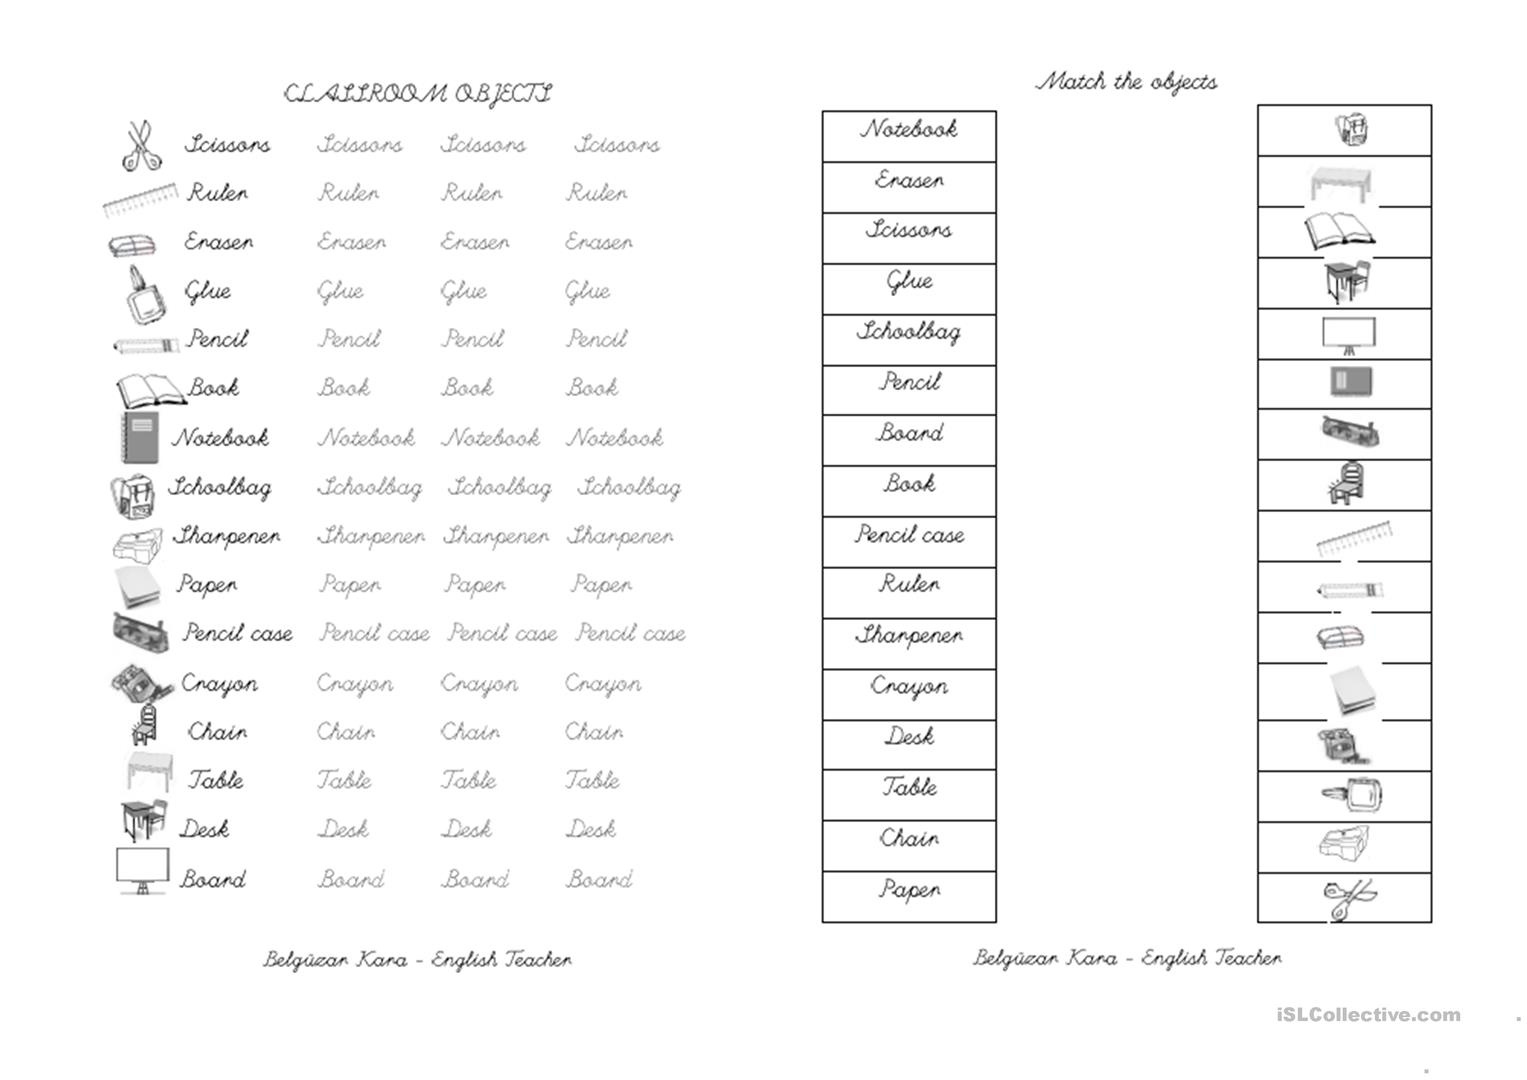 Classroom Objects Worksheet